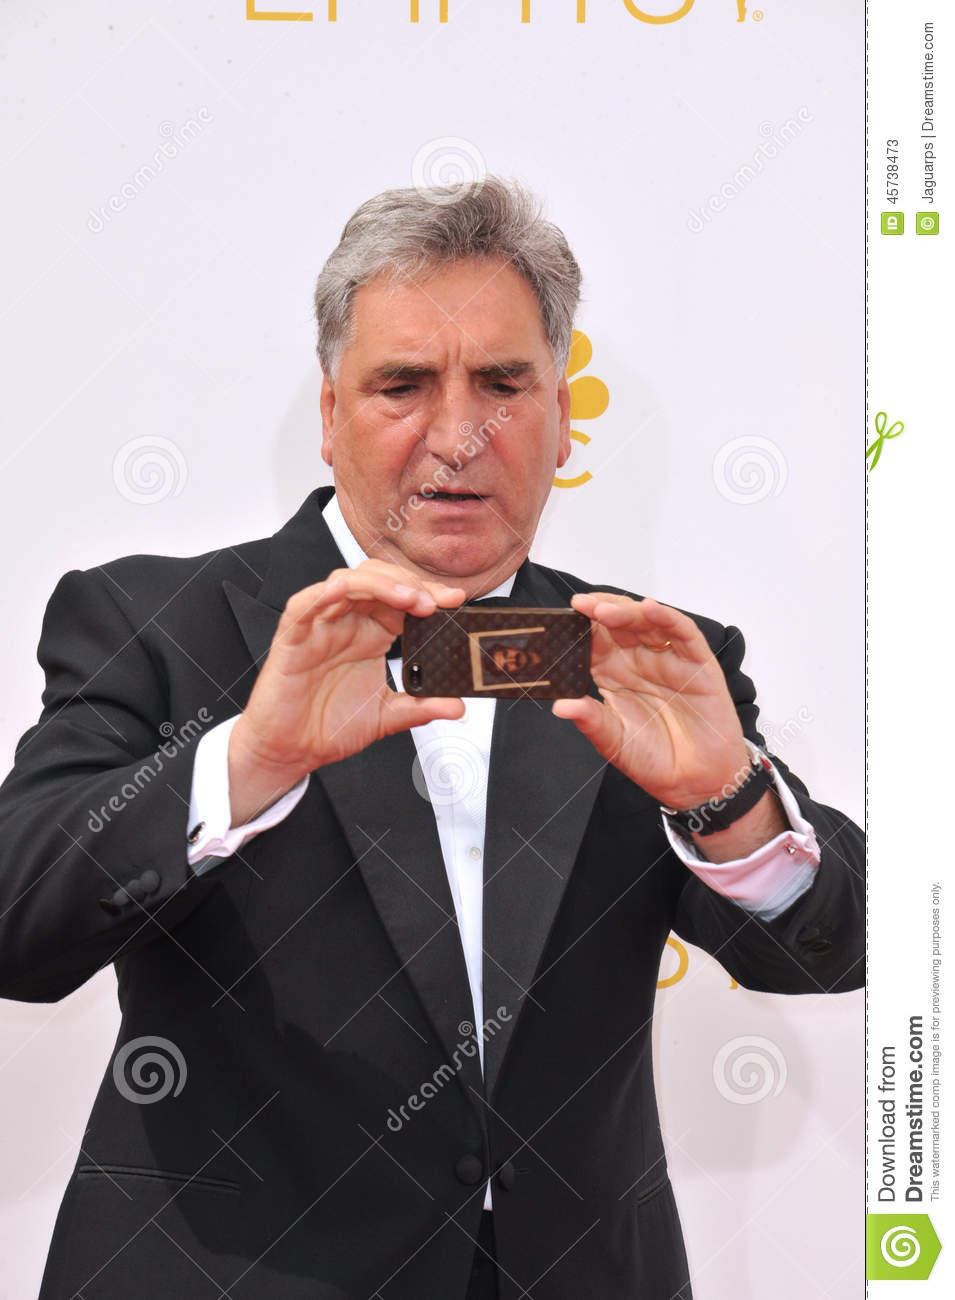 jim carter star wars